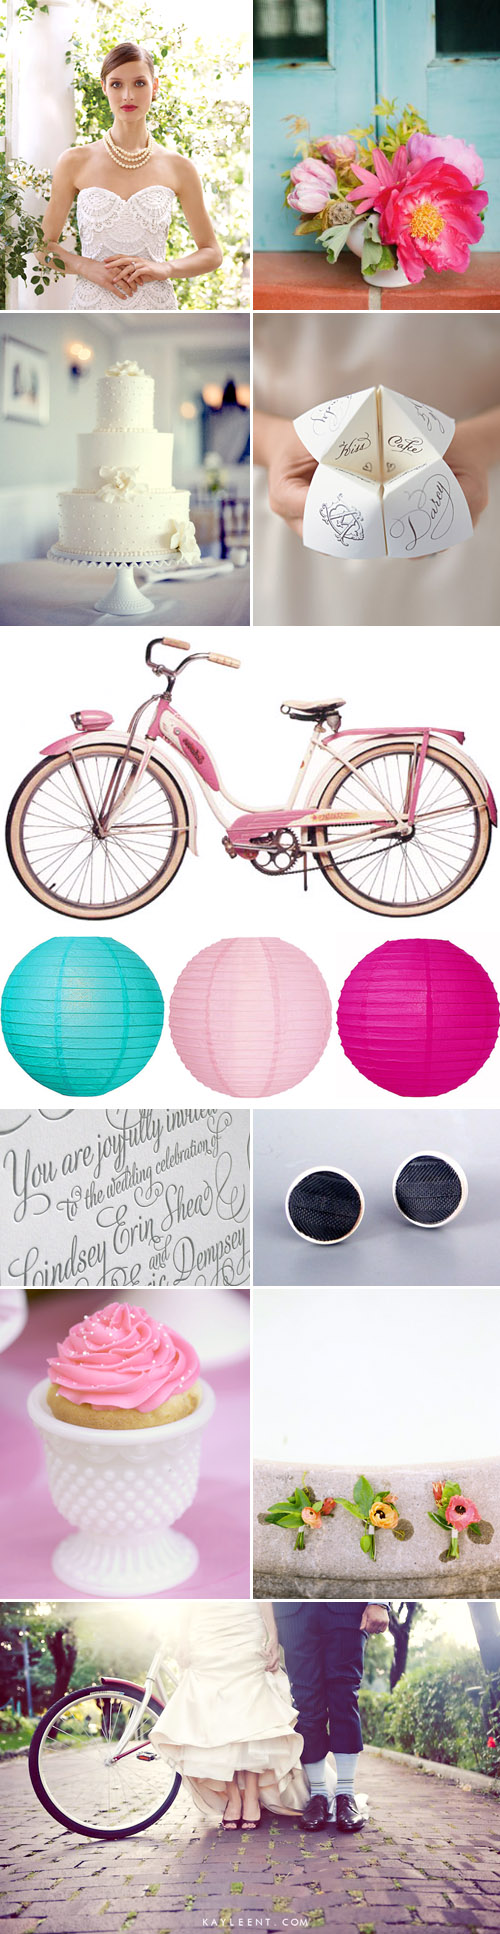 Romantic Bicycle Inspired Wedding Inspiration Board | Junebug Weddings